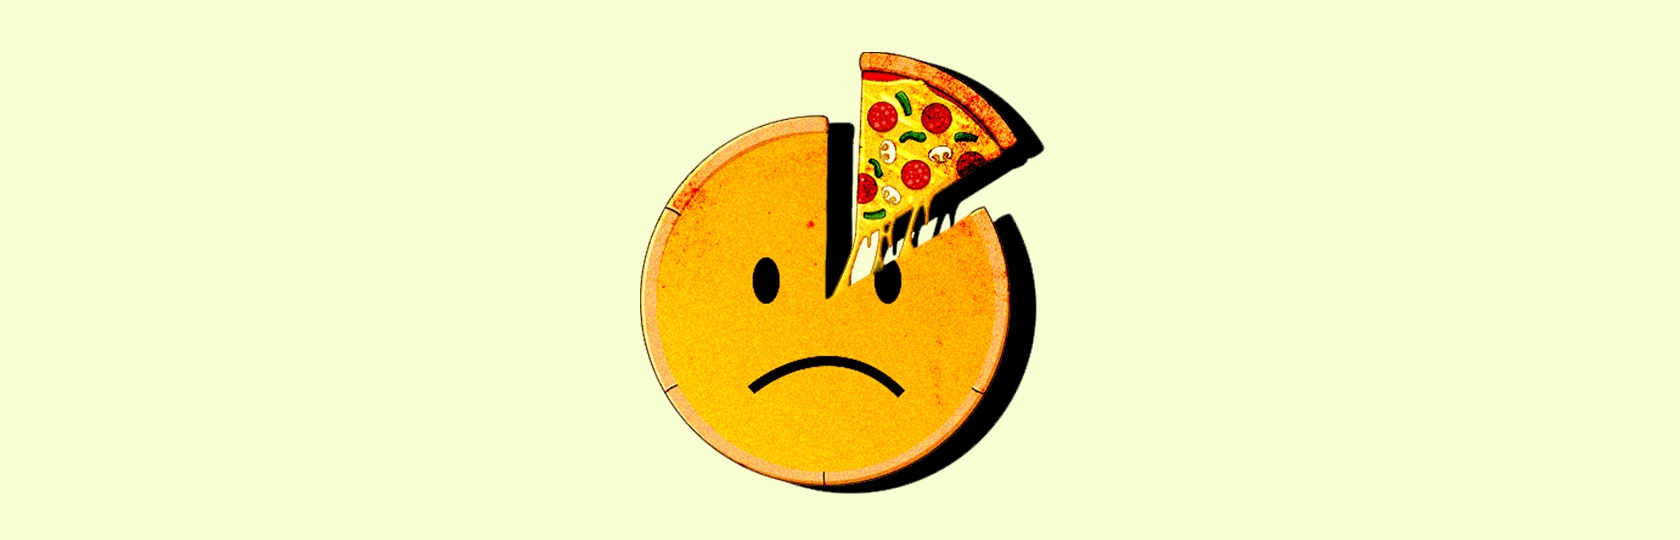 California Pizza Kitchen Filed For Bankruptcy After Withholding Rent How Will This Impact Reits The Business Of Business